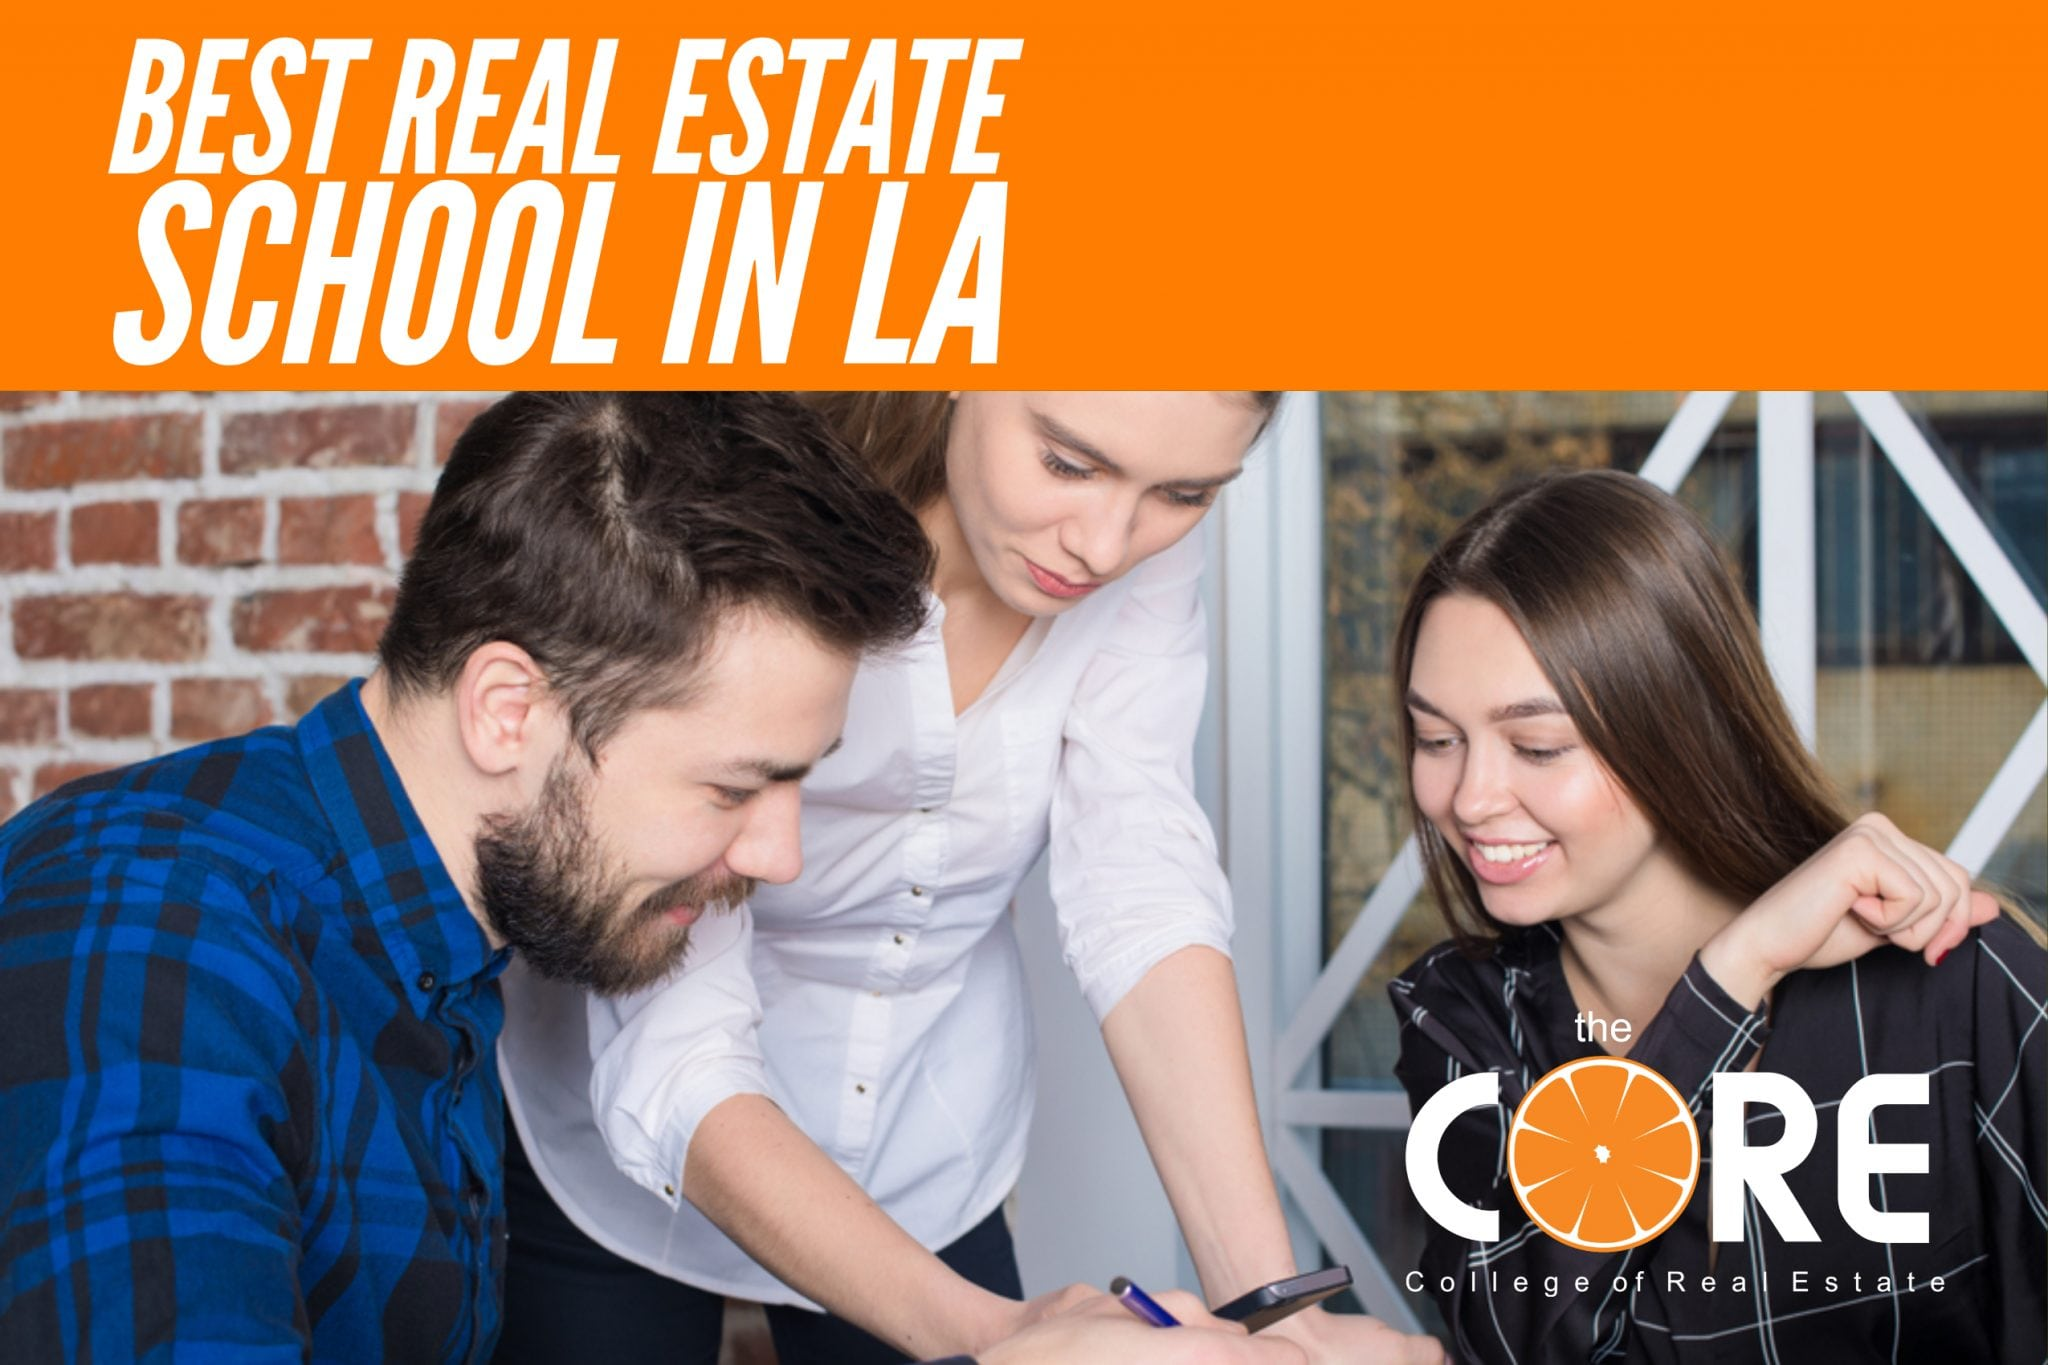 Get-Your-Real-Estate-License-Los-Angeles-Real-Estate-School-College-of-Real-Estate-theCORE.